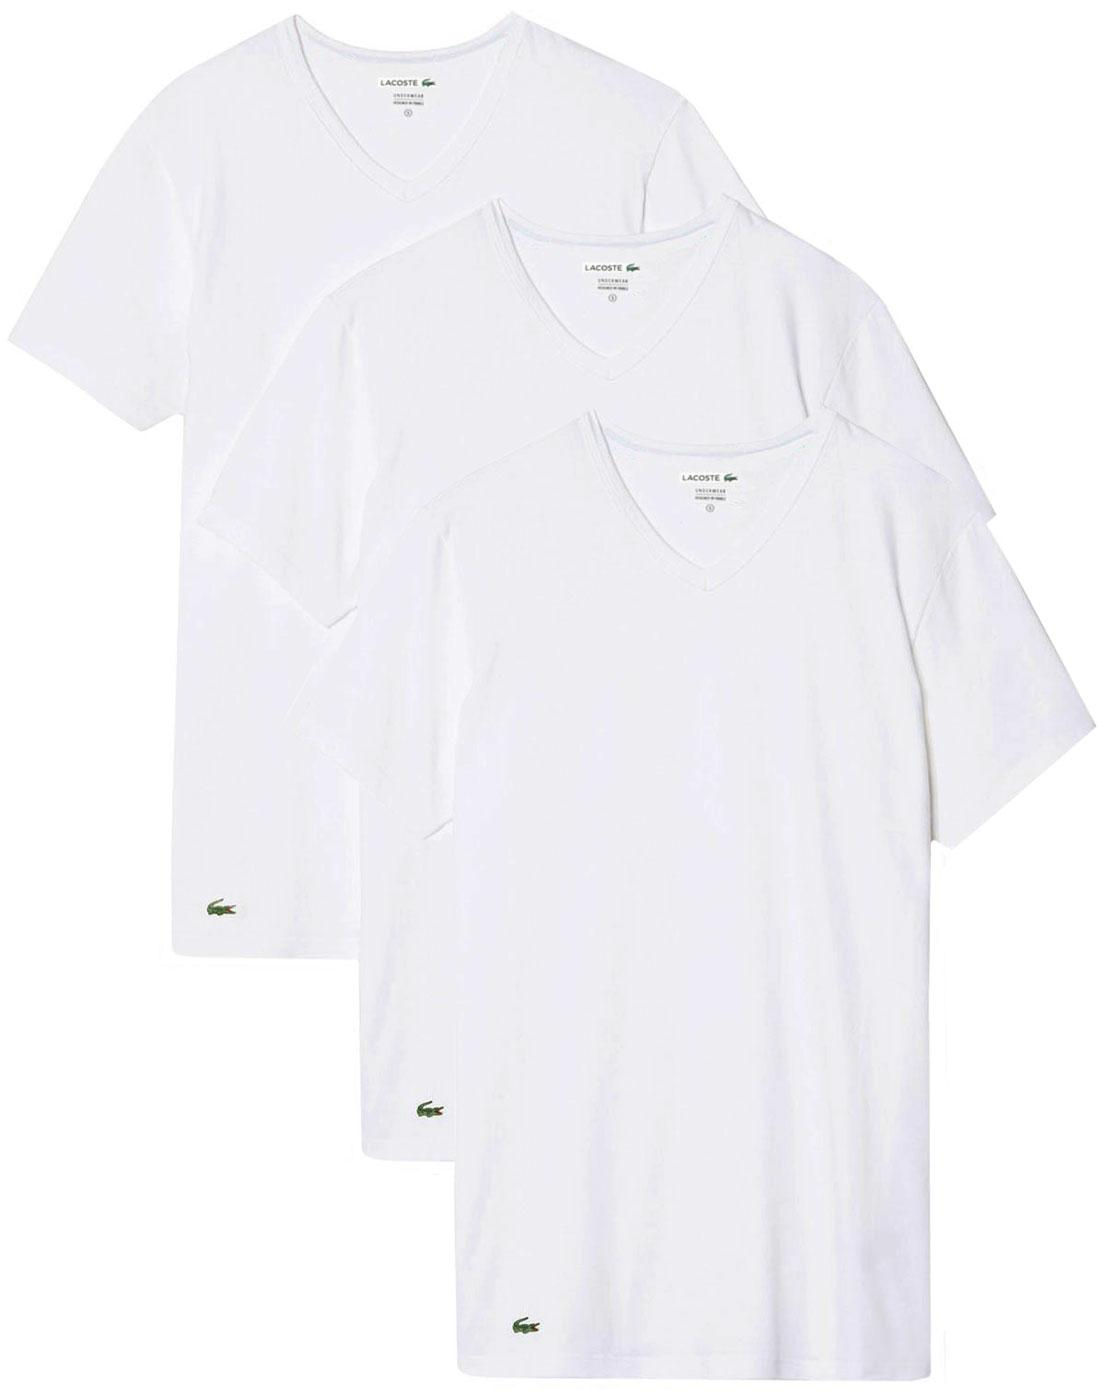 LACOSTE Men's 3 Pack Boxed V-Neck T-Shirt - WHITE